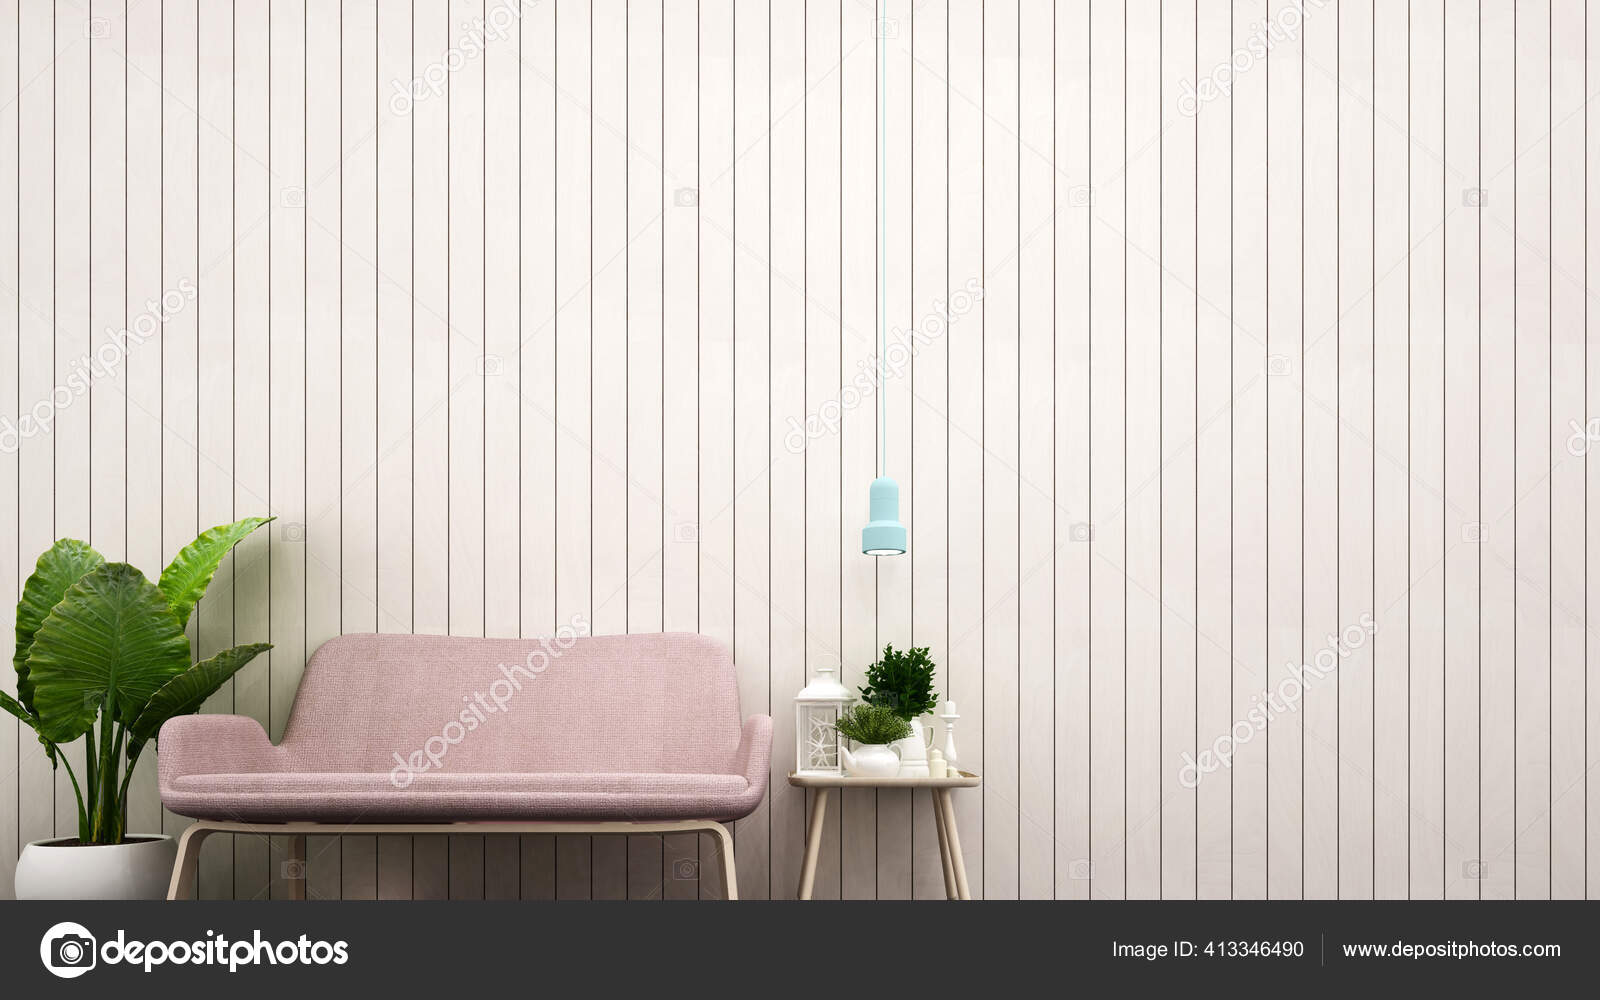 Living Room Decoration White Wood Wall Artwork Pink Sofa Decoration Stock Photo Image By C Pantowto Gmail Com 413346490